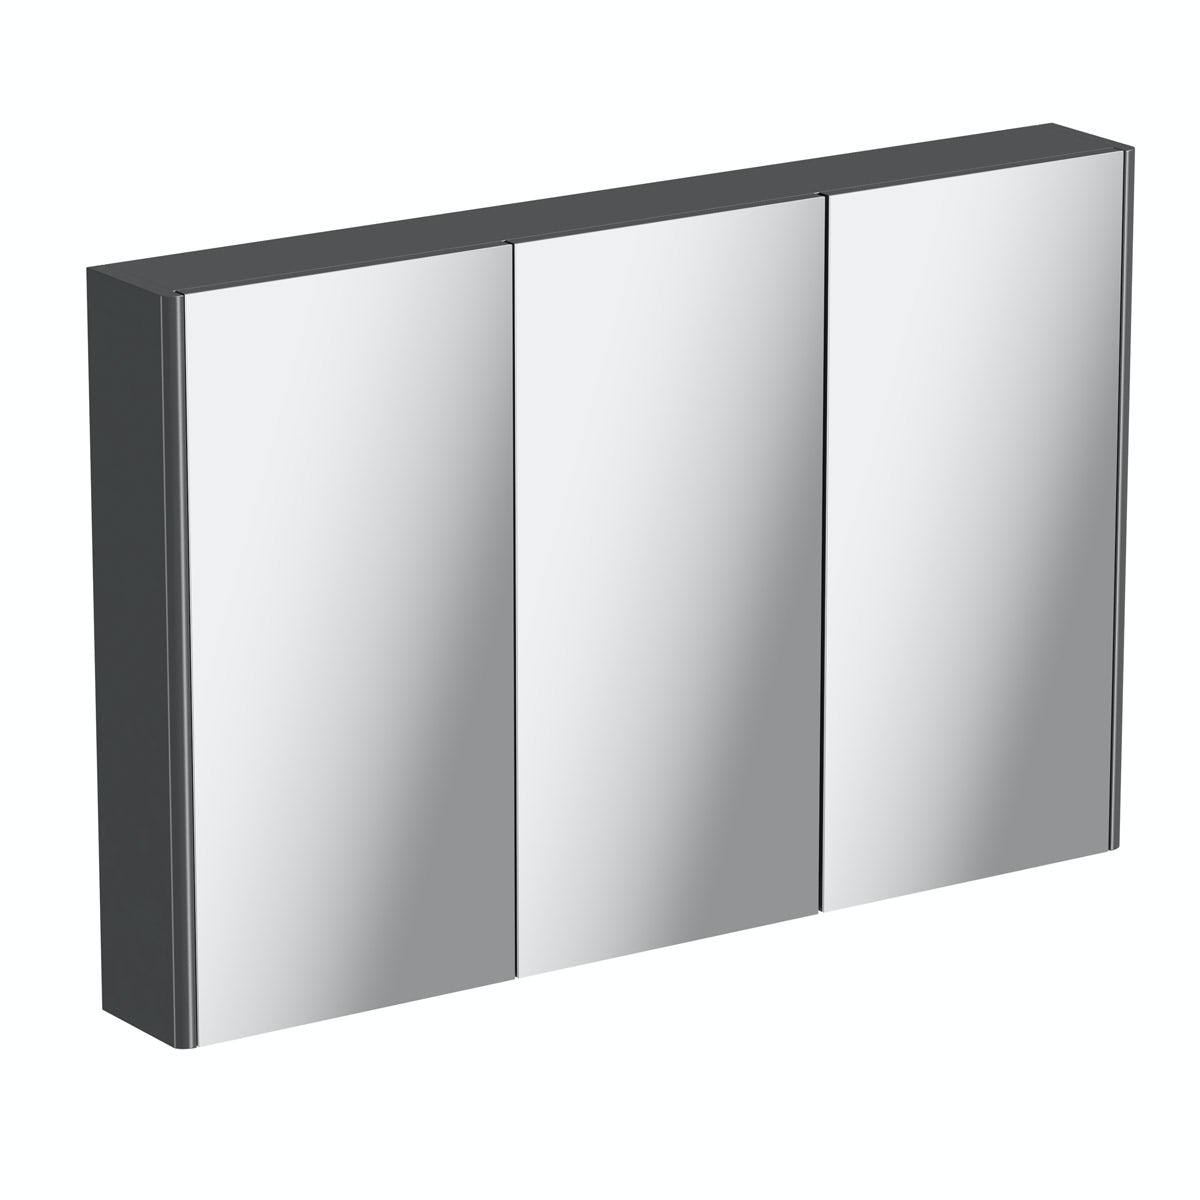 Mode slate curved mirror cabinet 1000mm